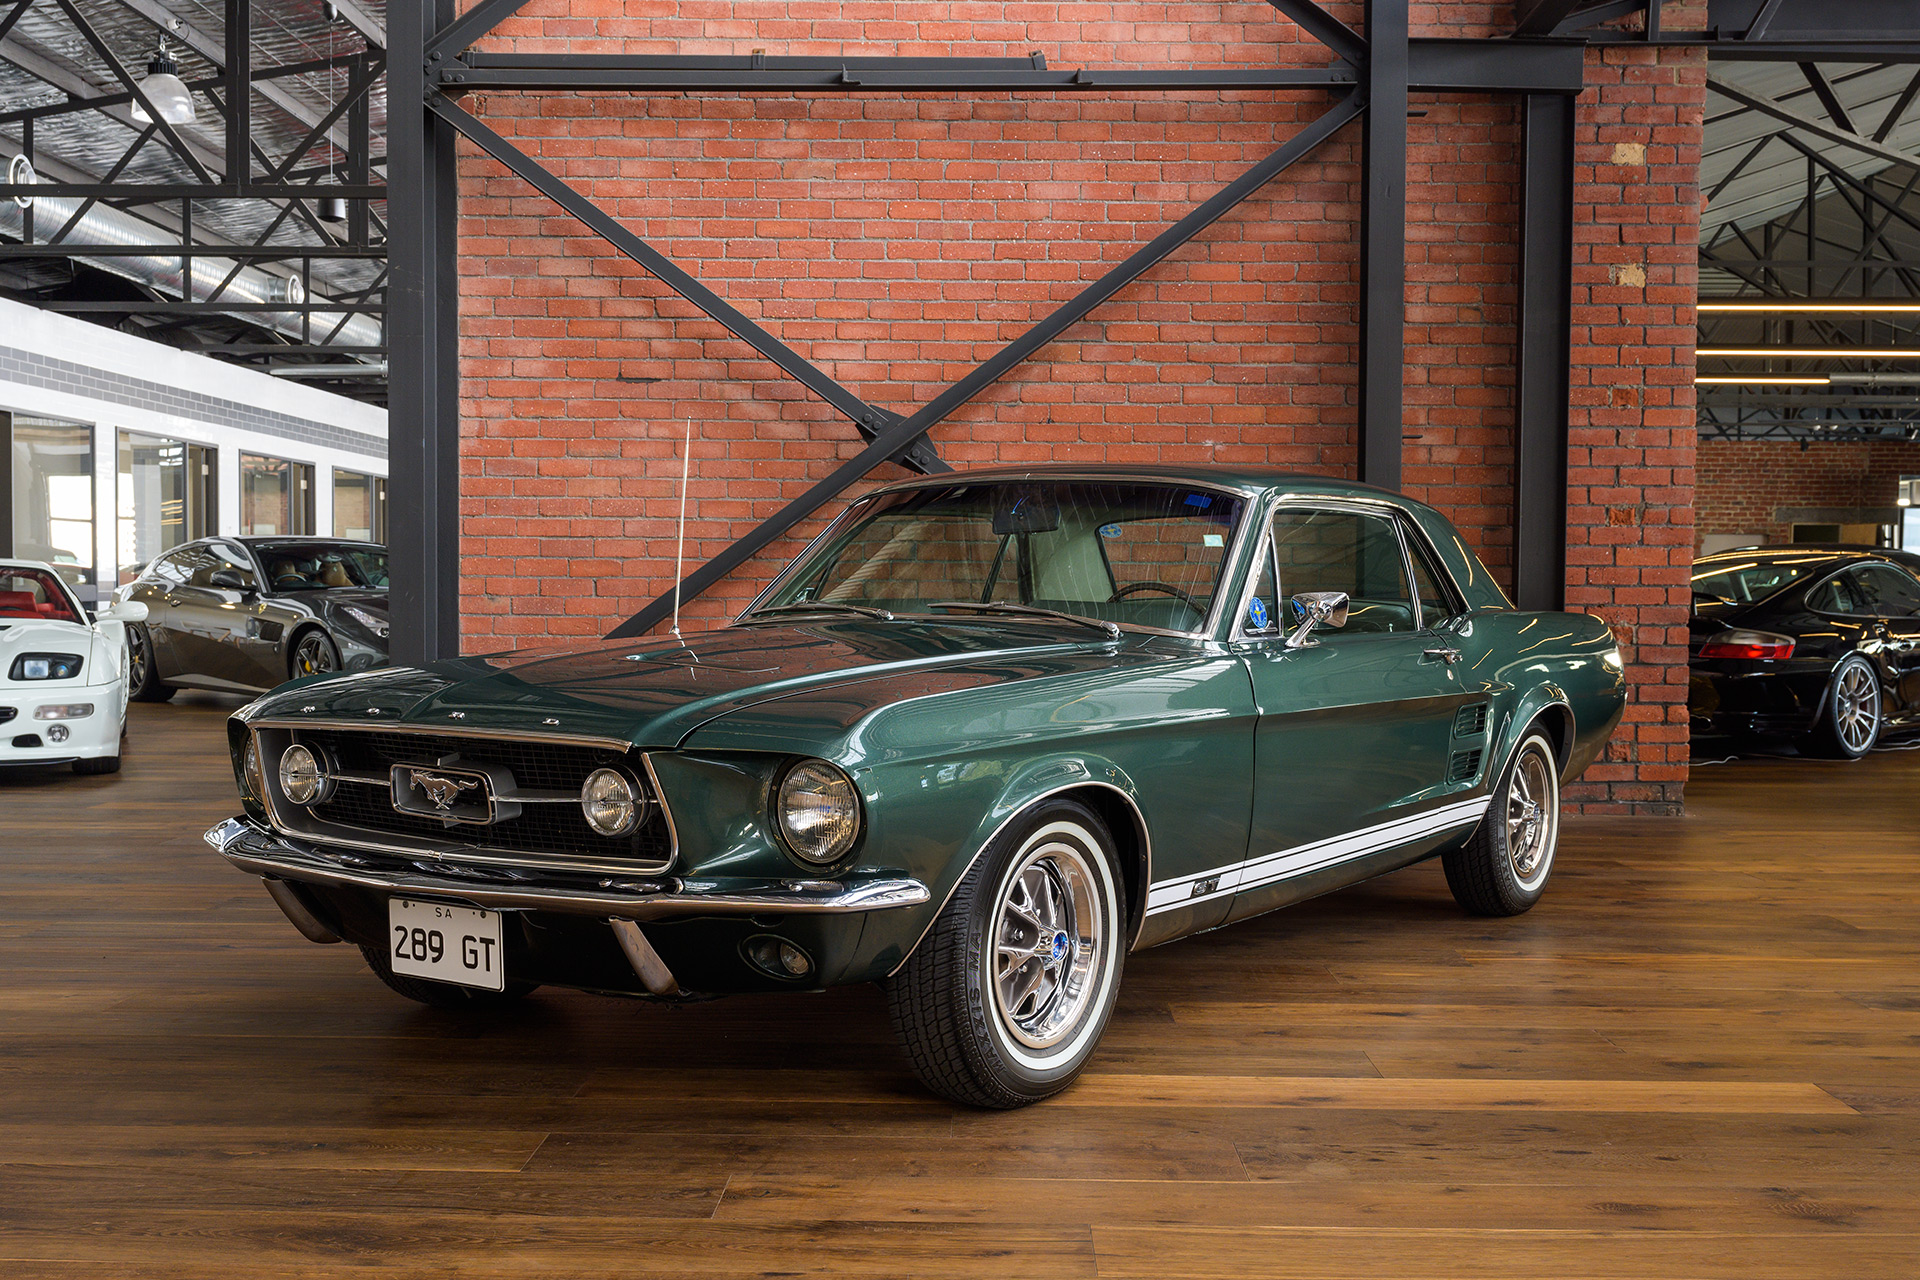 1967 Ford Mustang 289 Gt Hardtop Richmonds Classic And